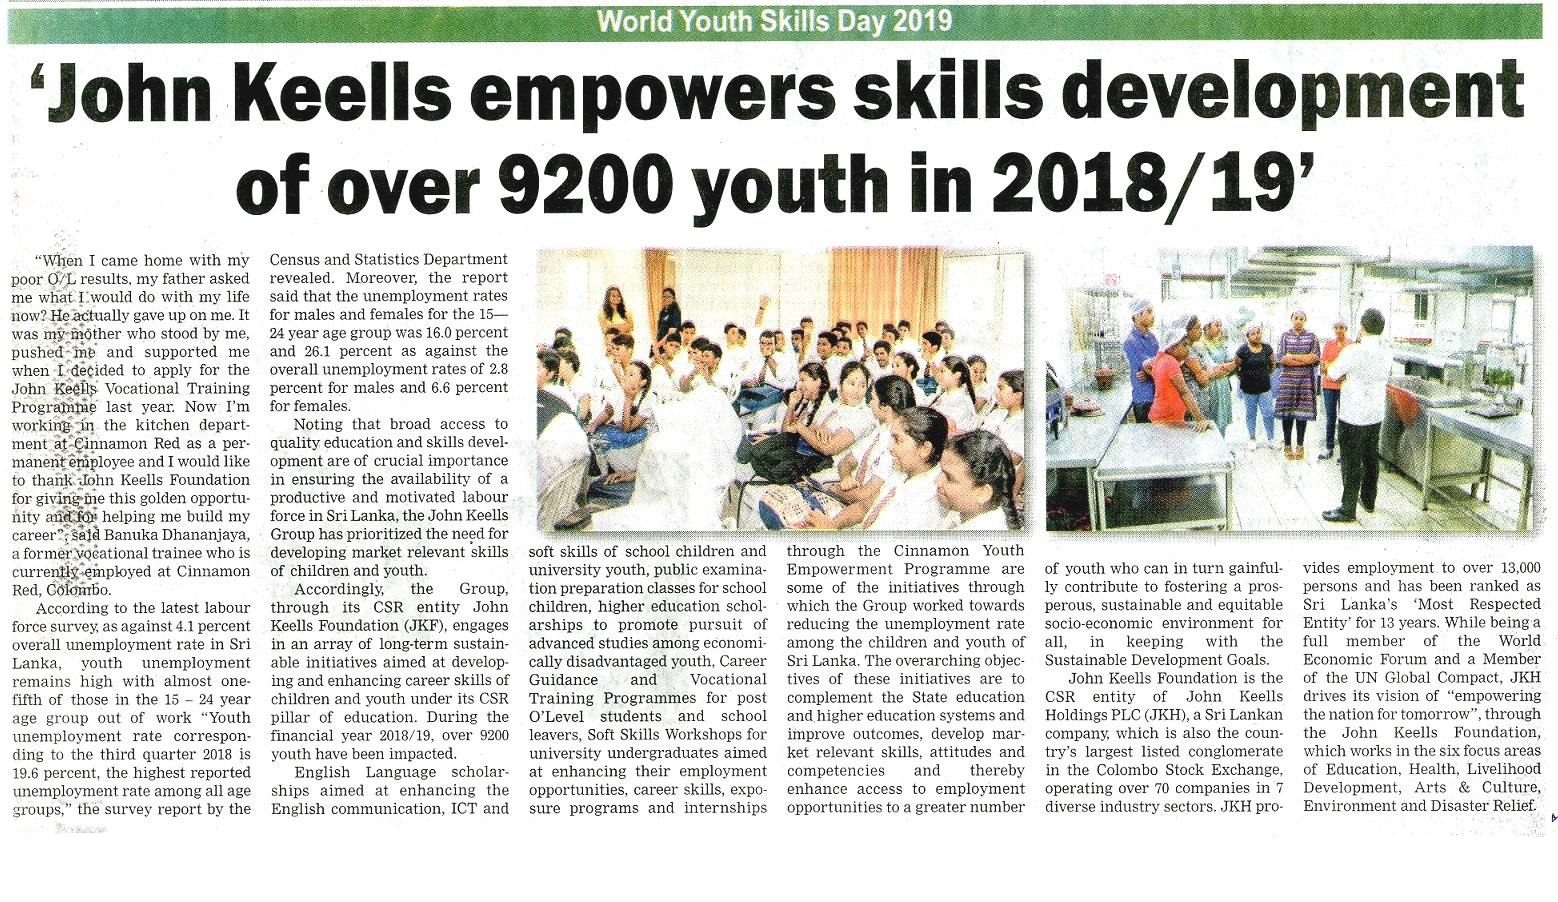 John Keells empowers skills development of over 9200 youth in 2018/2019